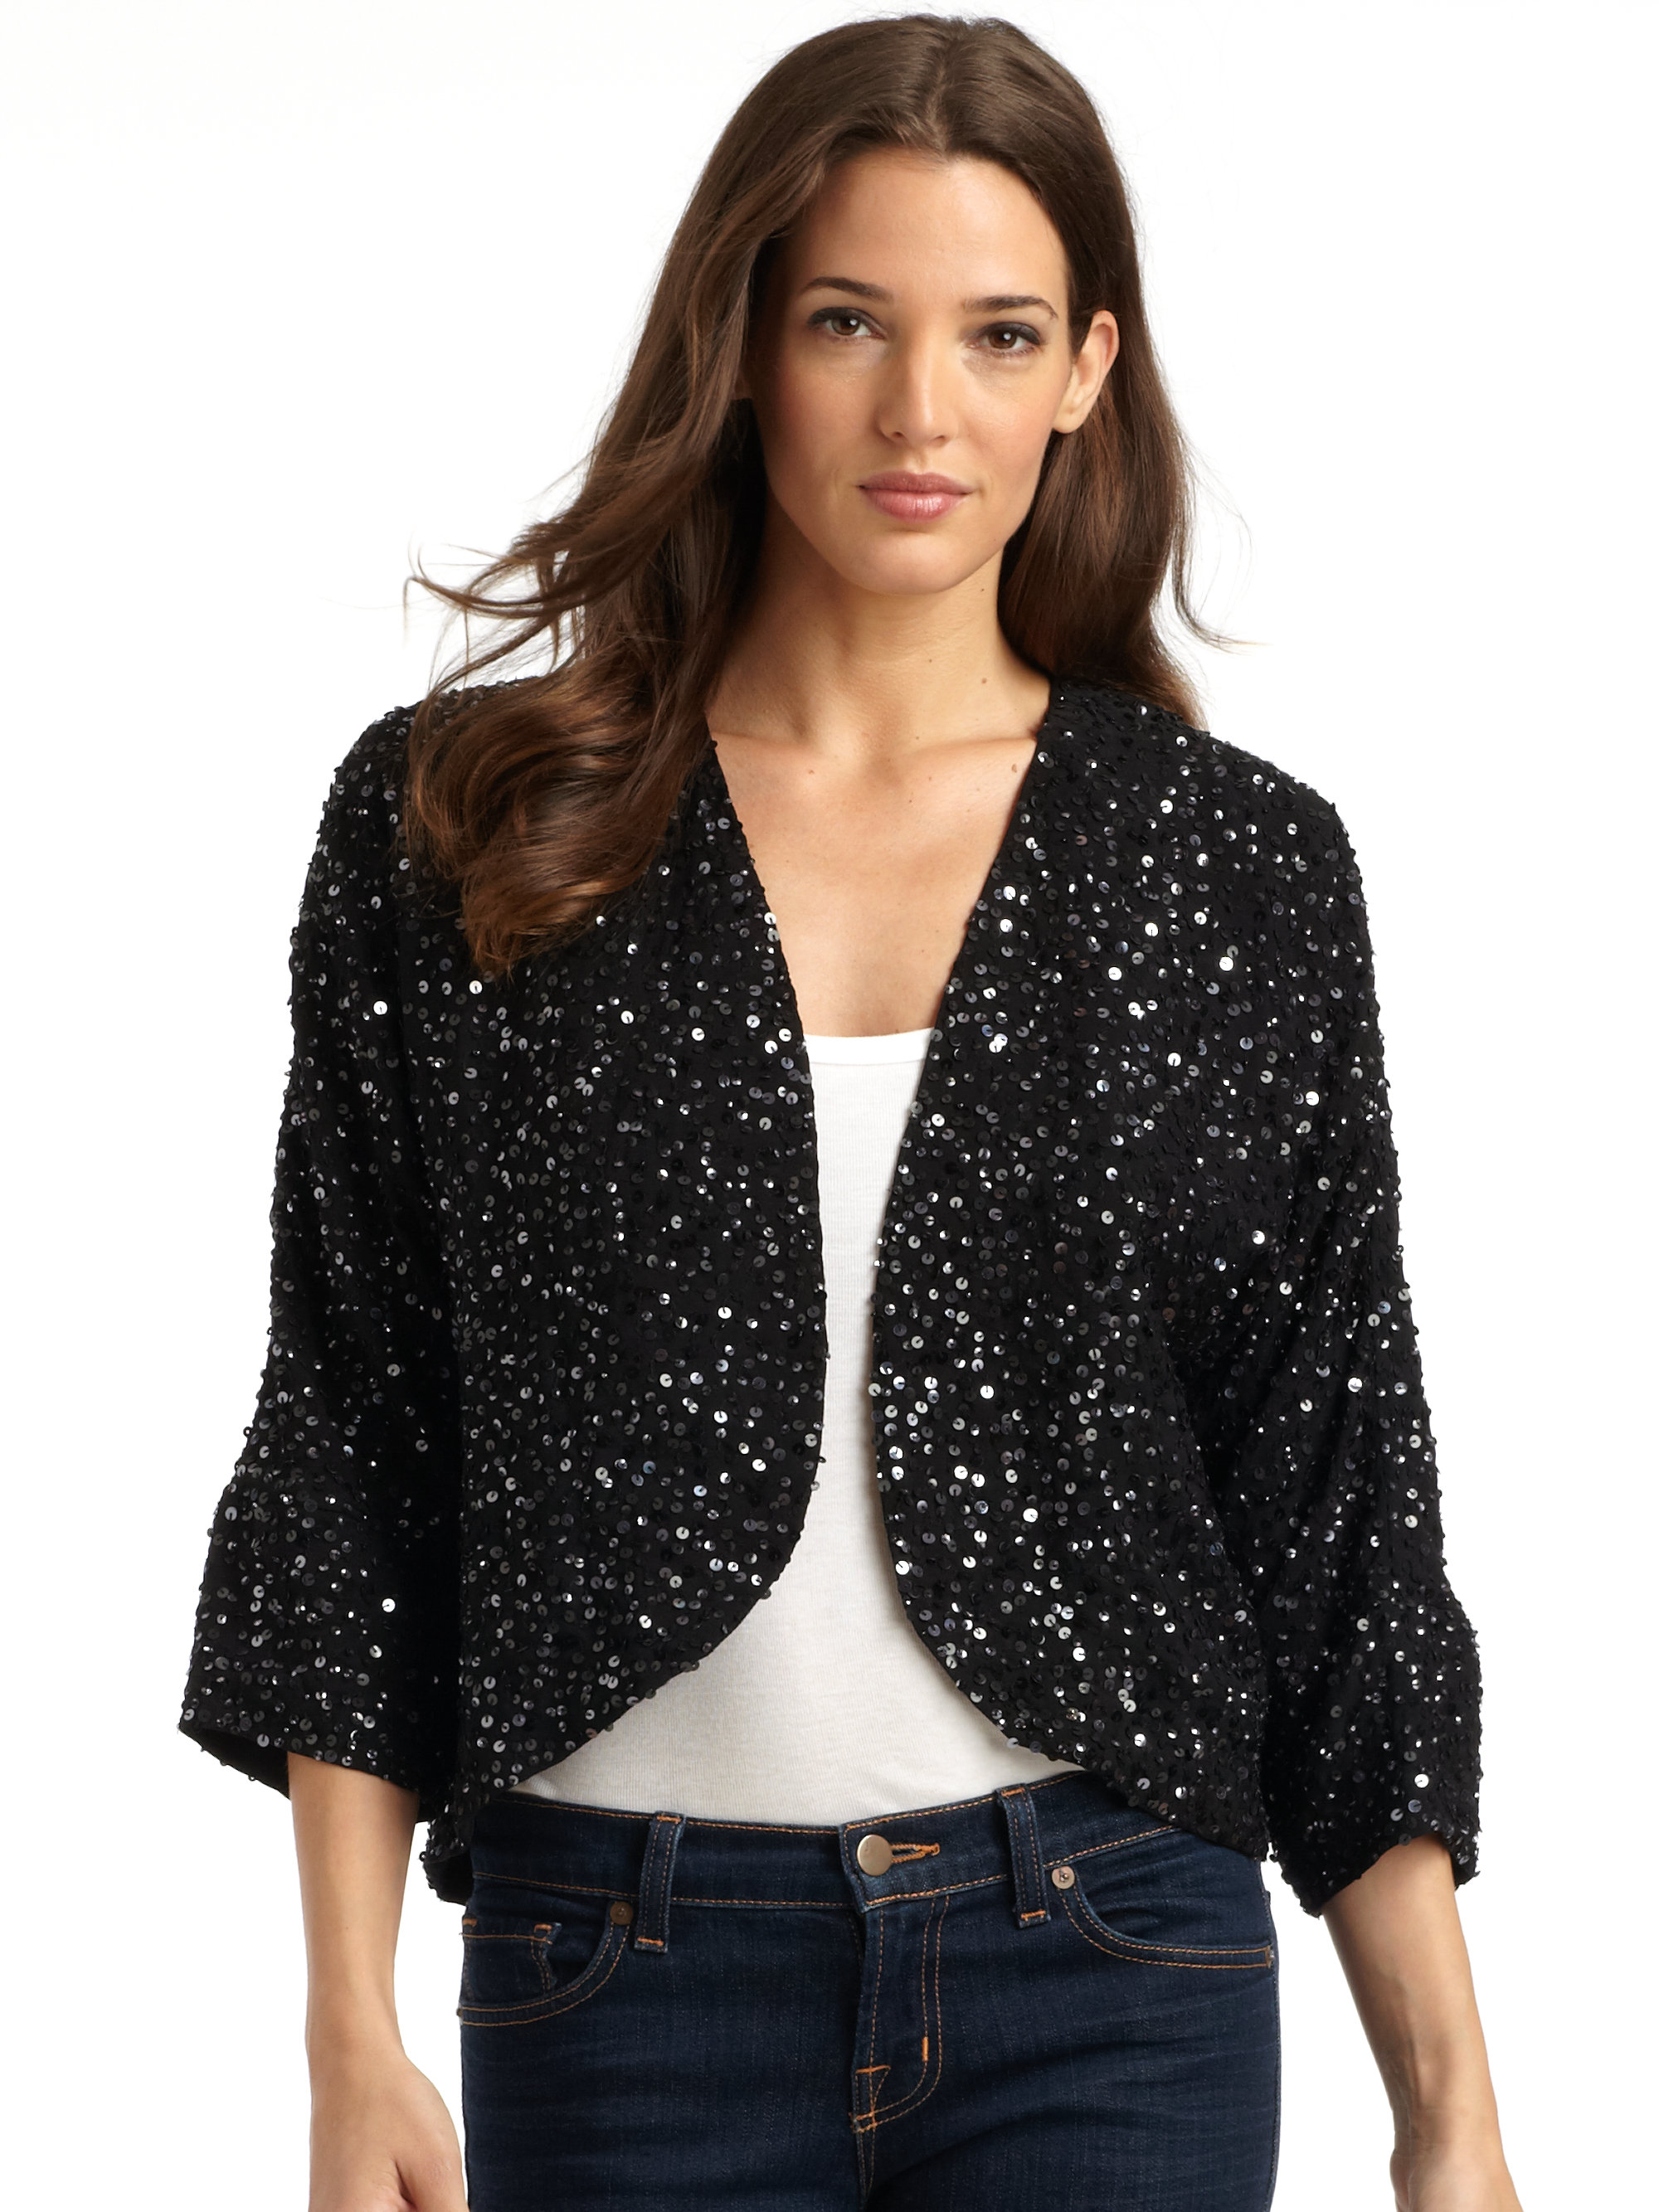 Eileen fisher Silk Sequin Kimono Jacket in Black | Lyst